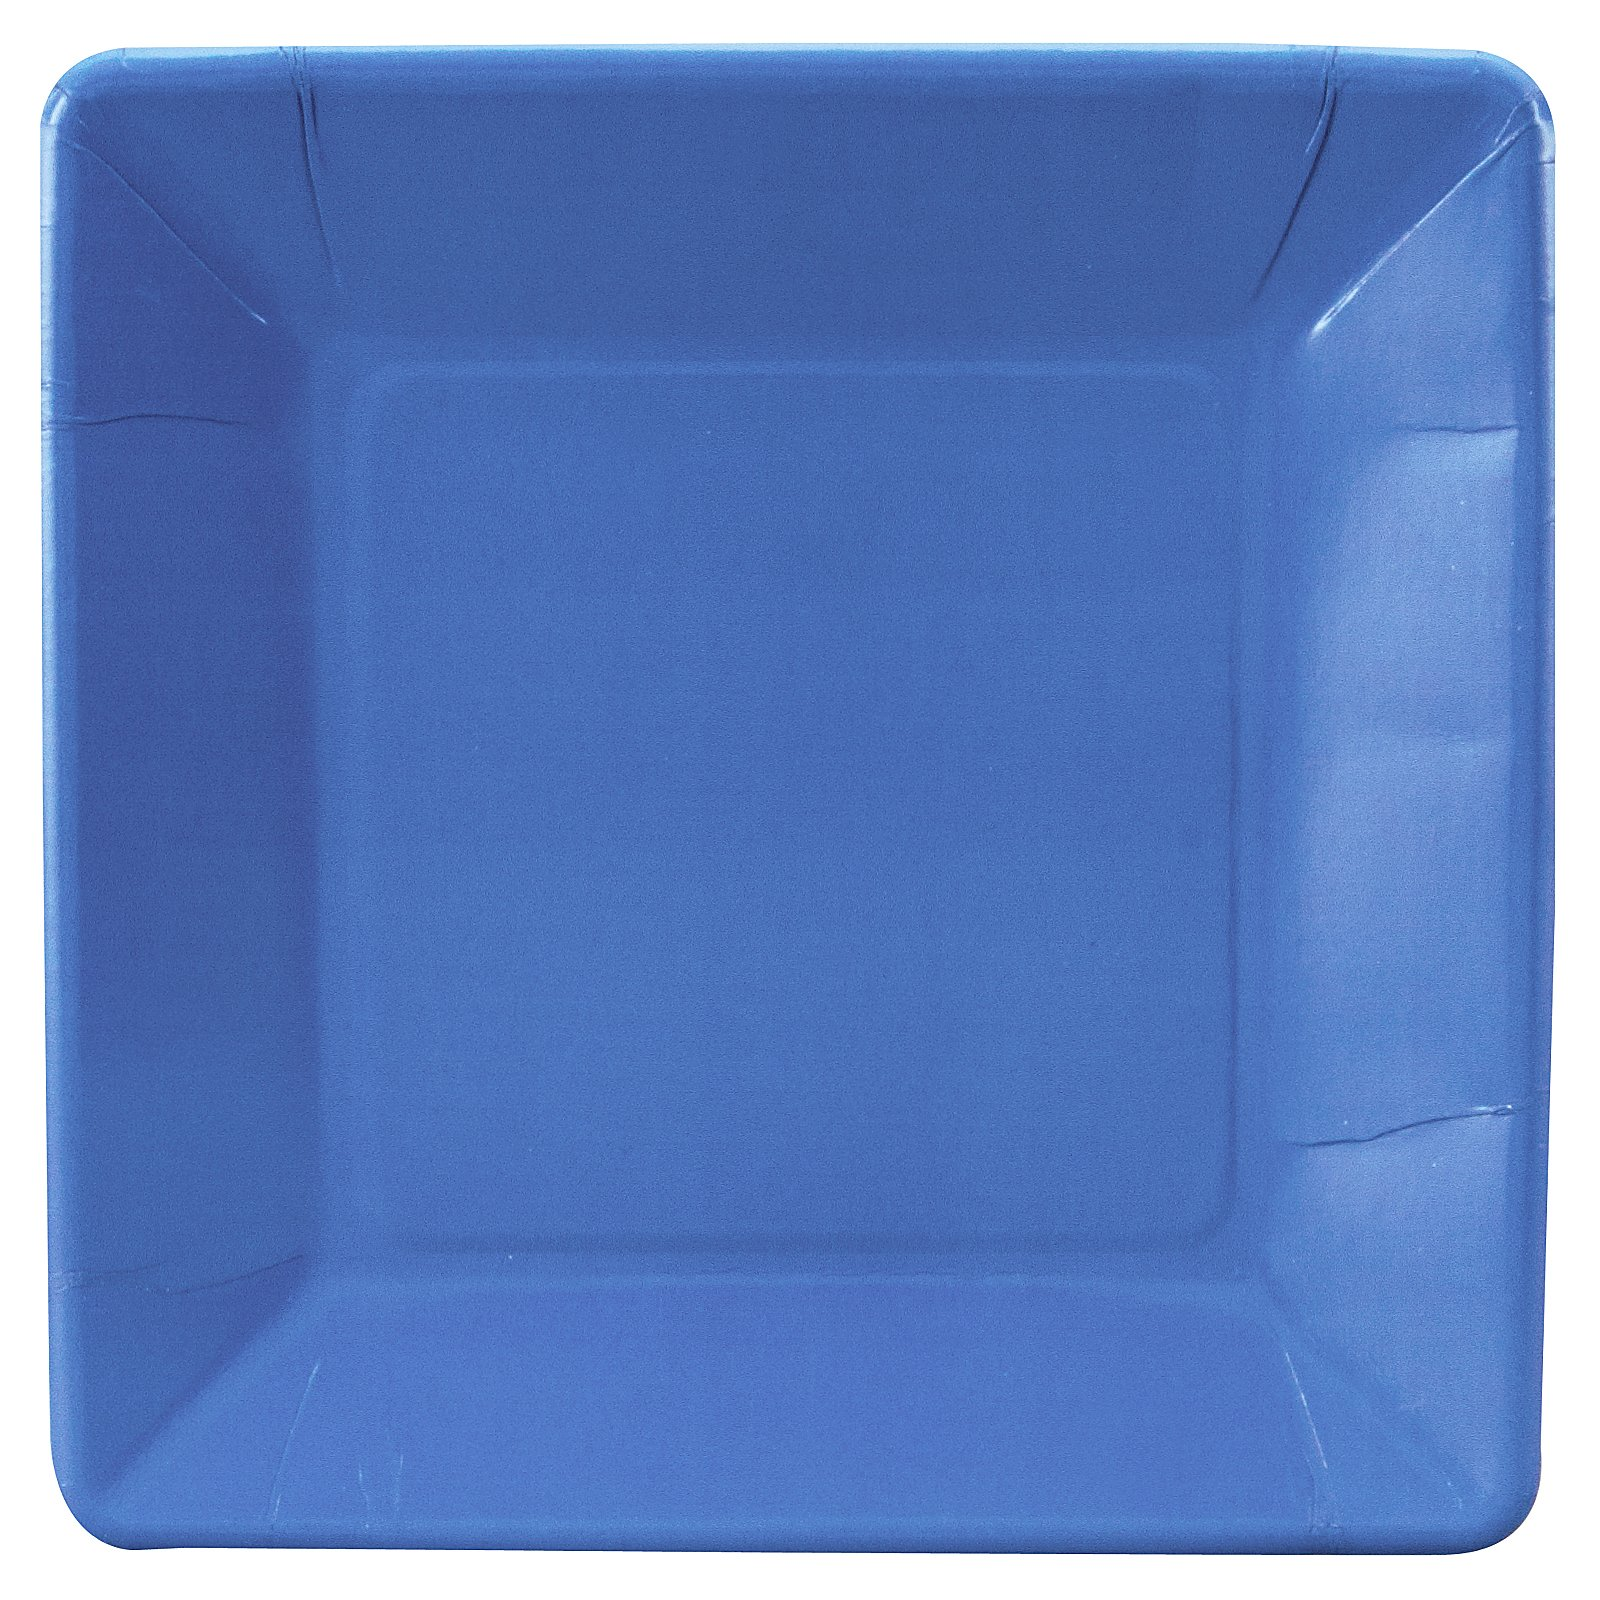 True Blue (Blue) Square Dinner Plates (18 count)